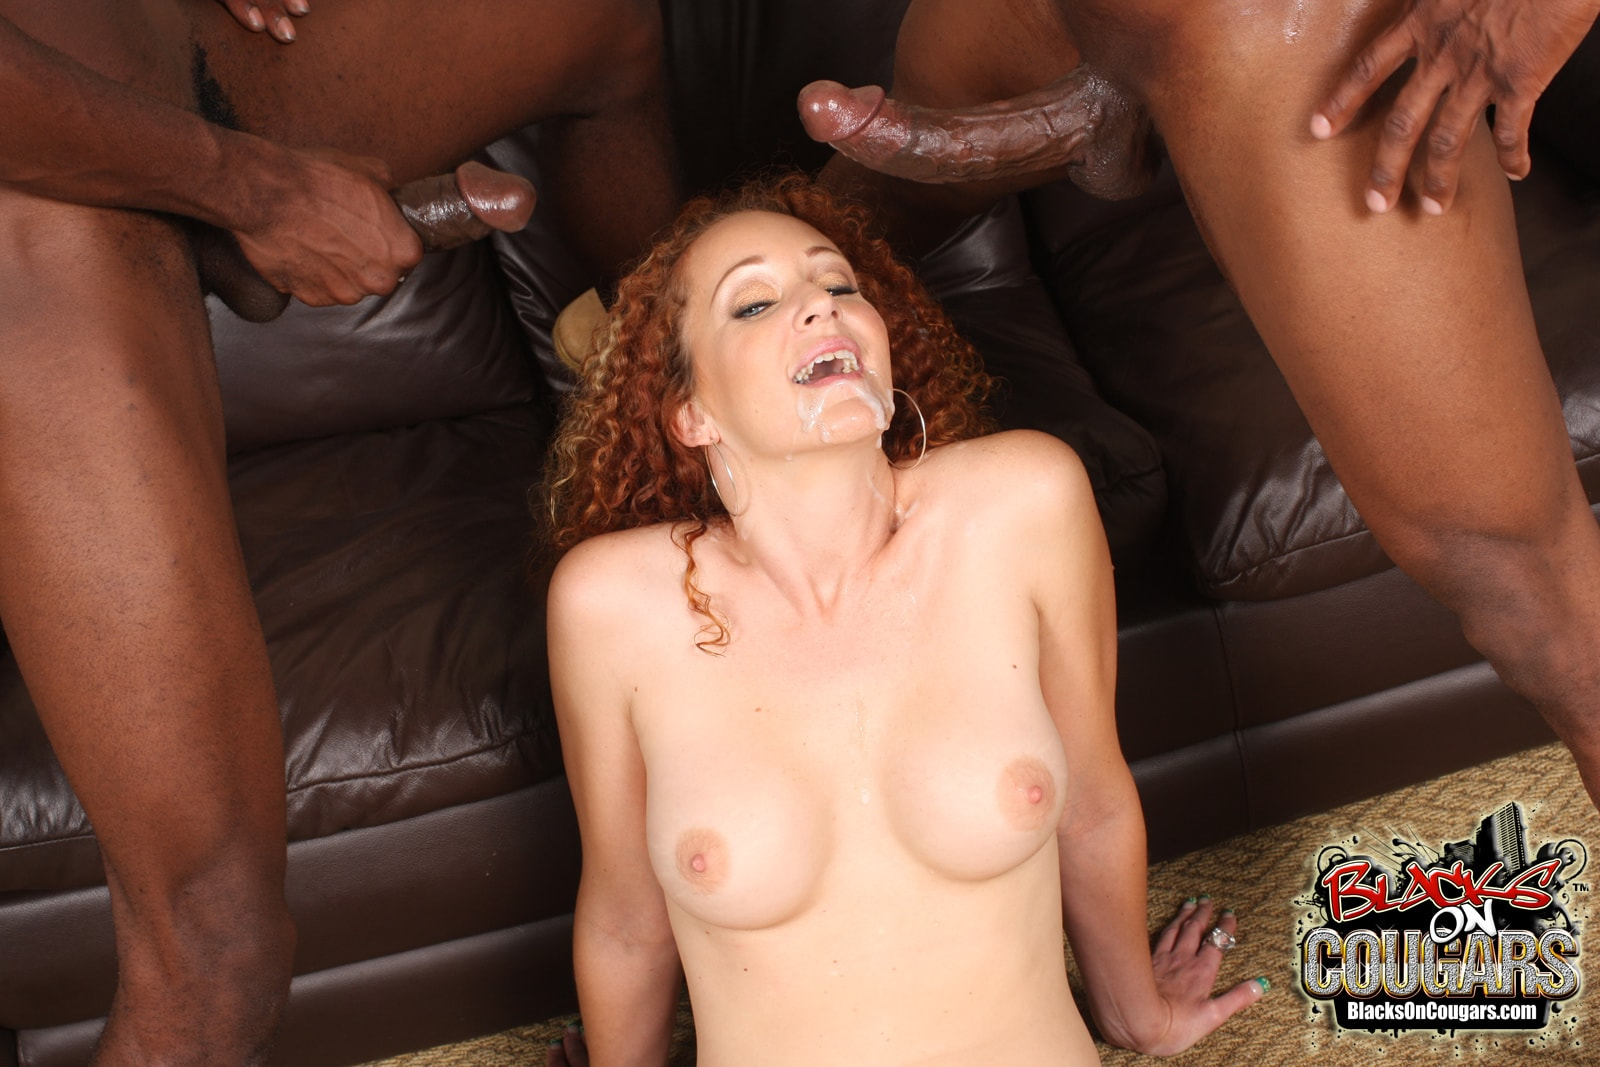 Dogfart '- Blacks On Cougars' starring Kitty Caulfield (Photo 29)